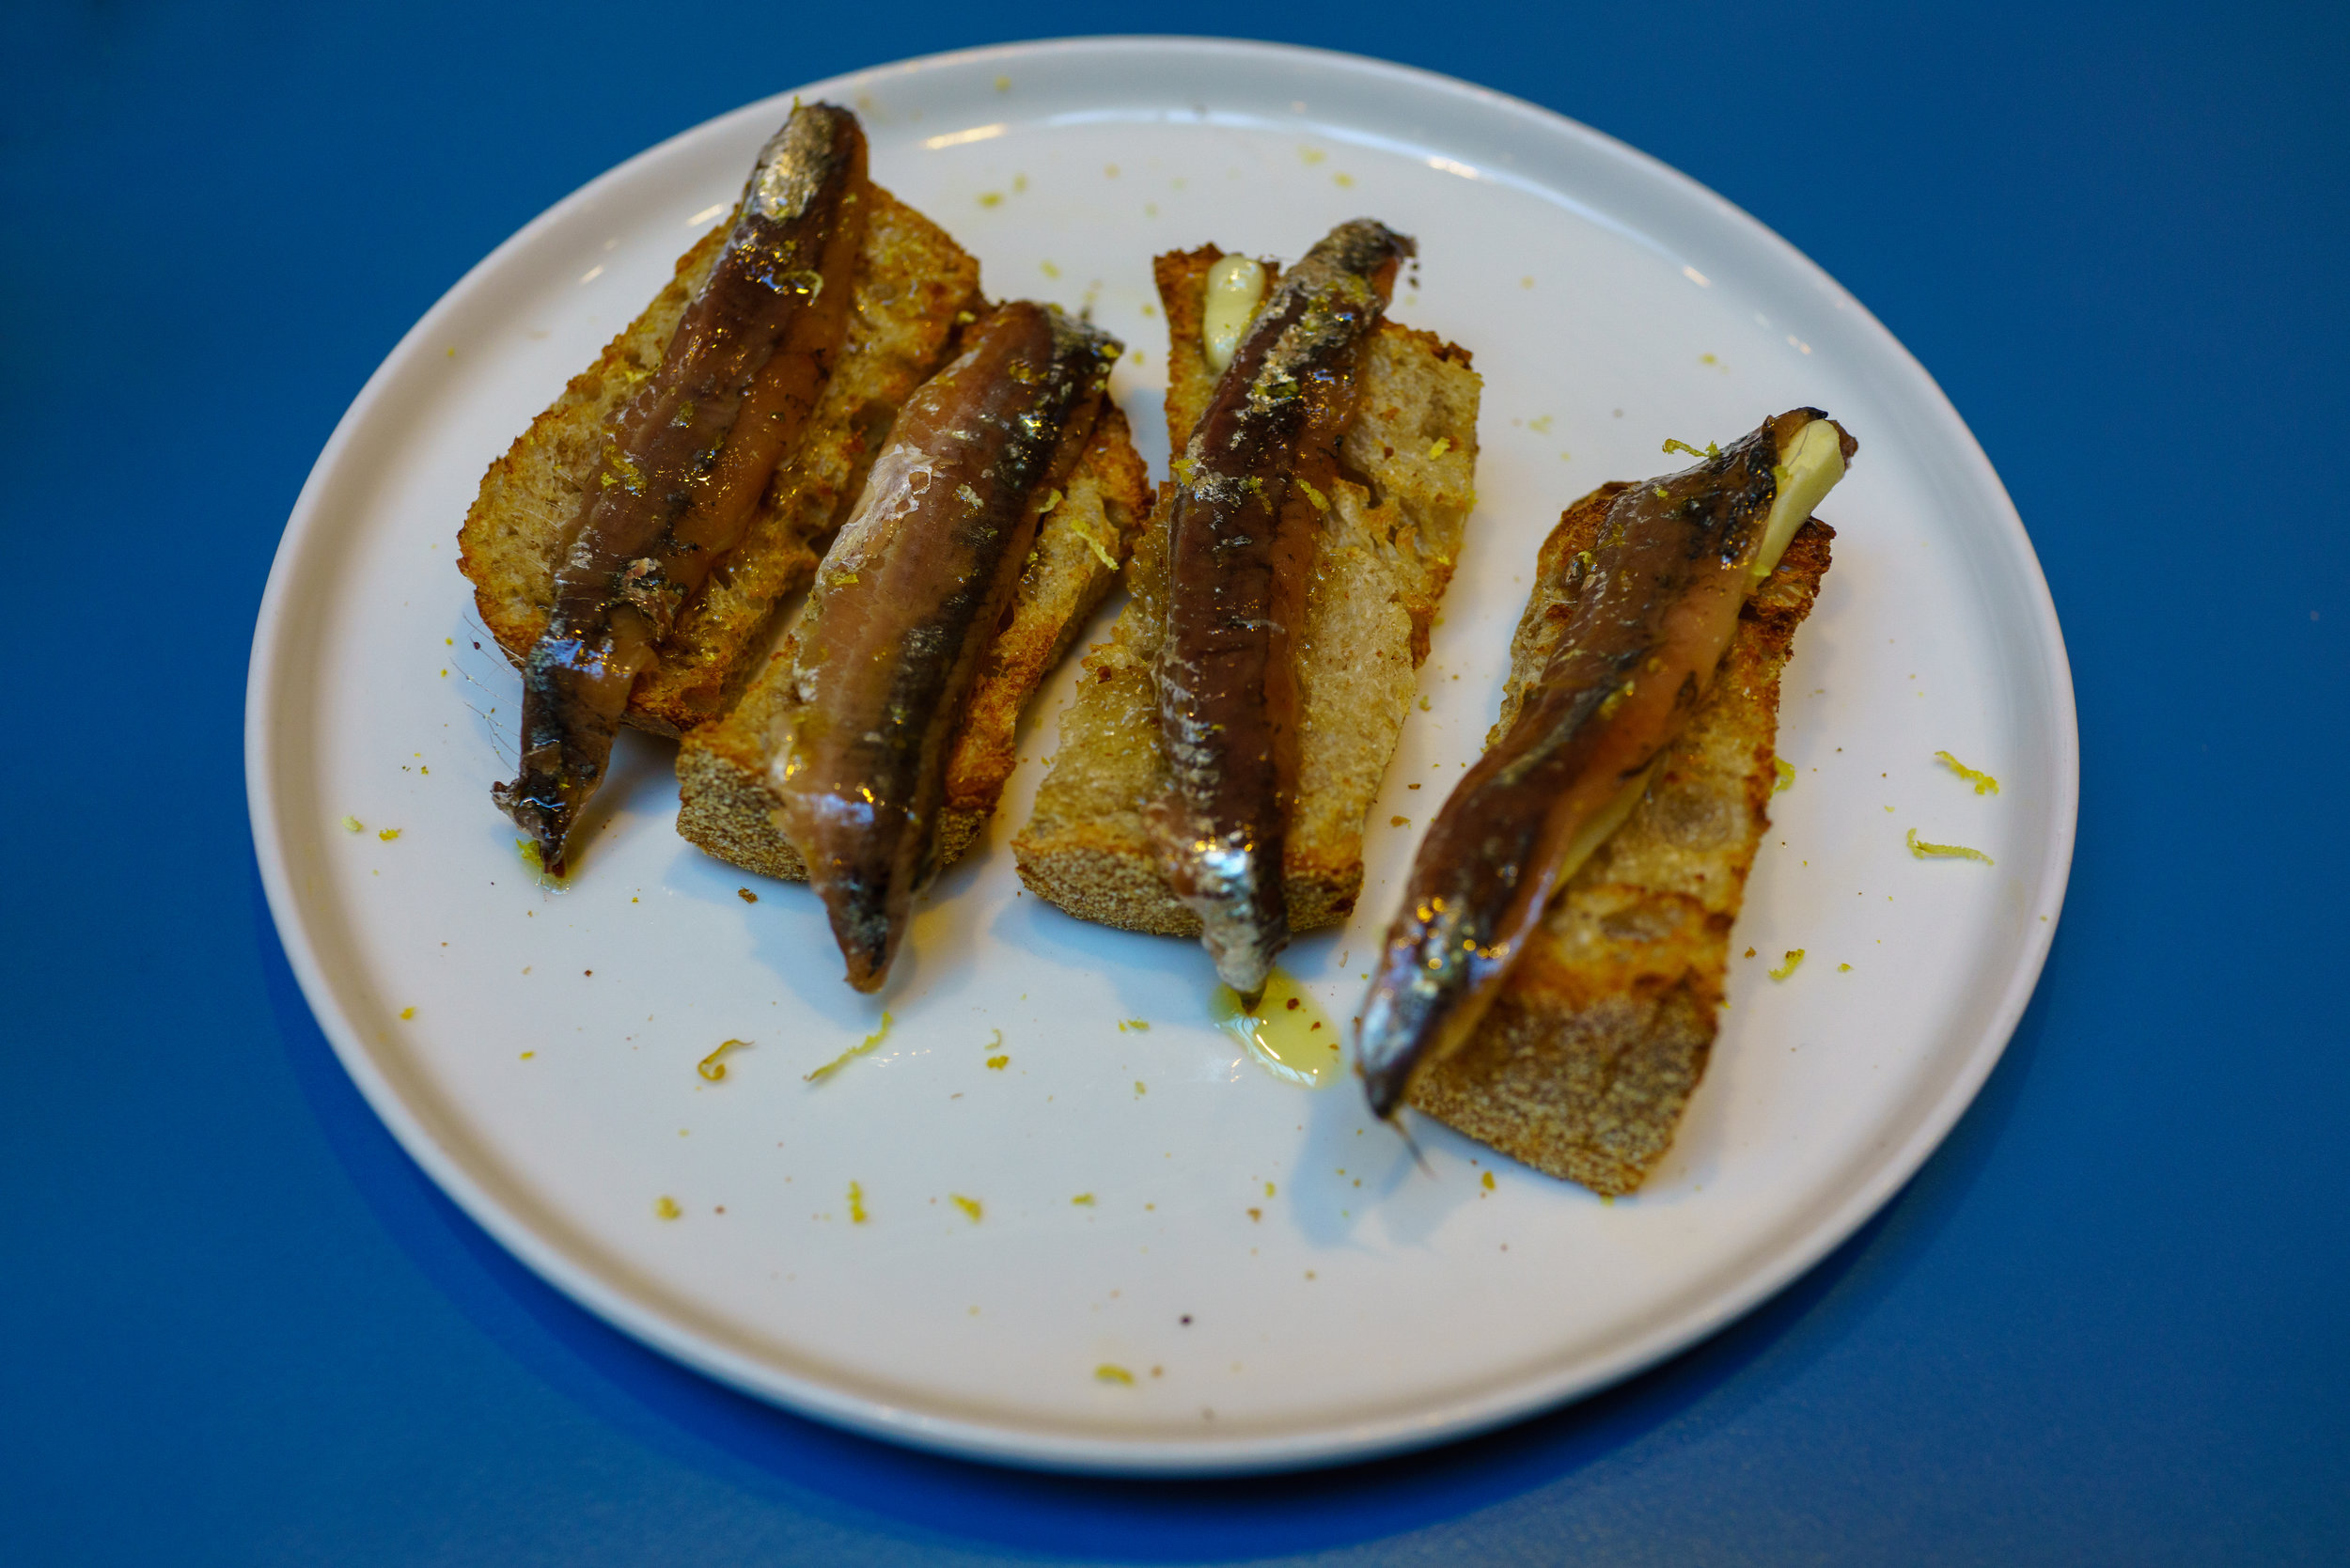 Crostini with Cetara Anchovies, Butter and Lemon Zest, Berberè Pizza, Bologna, Italy